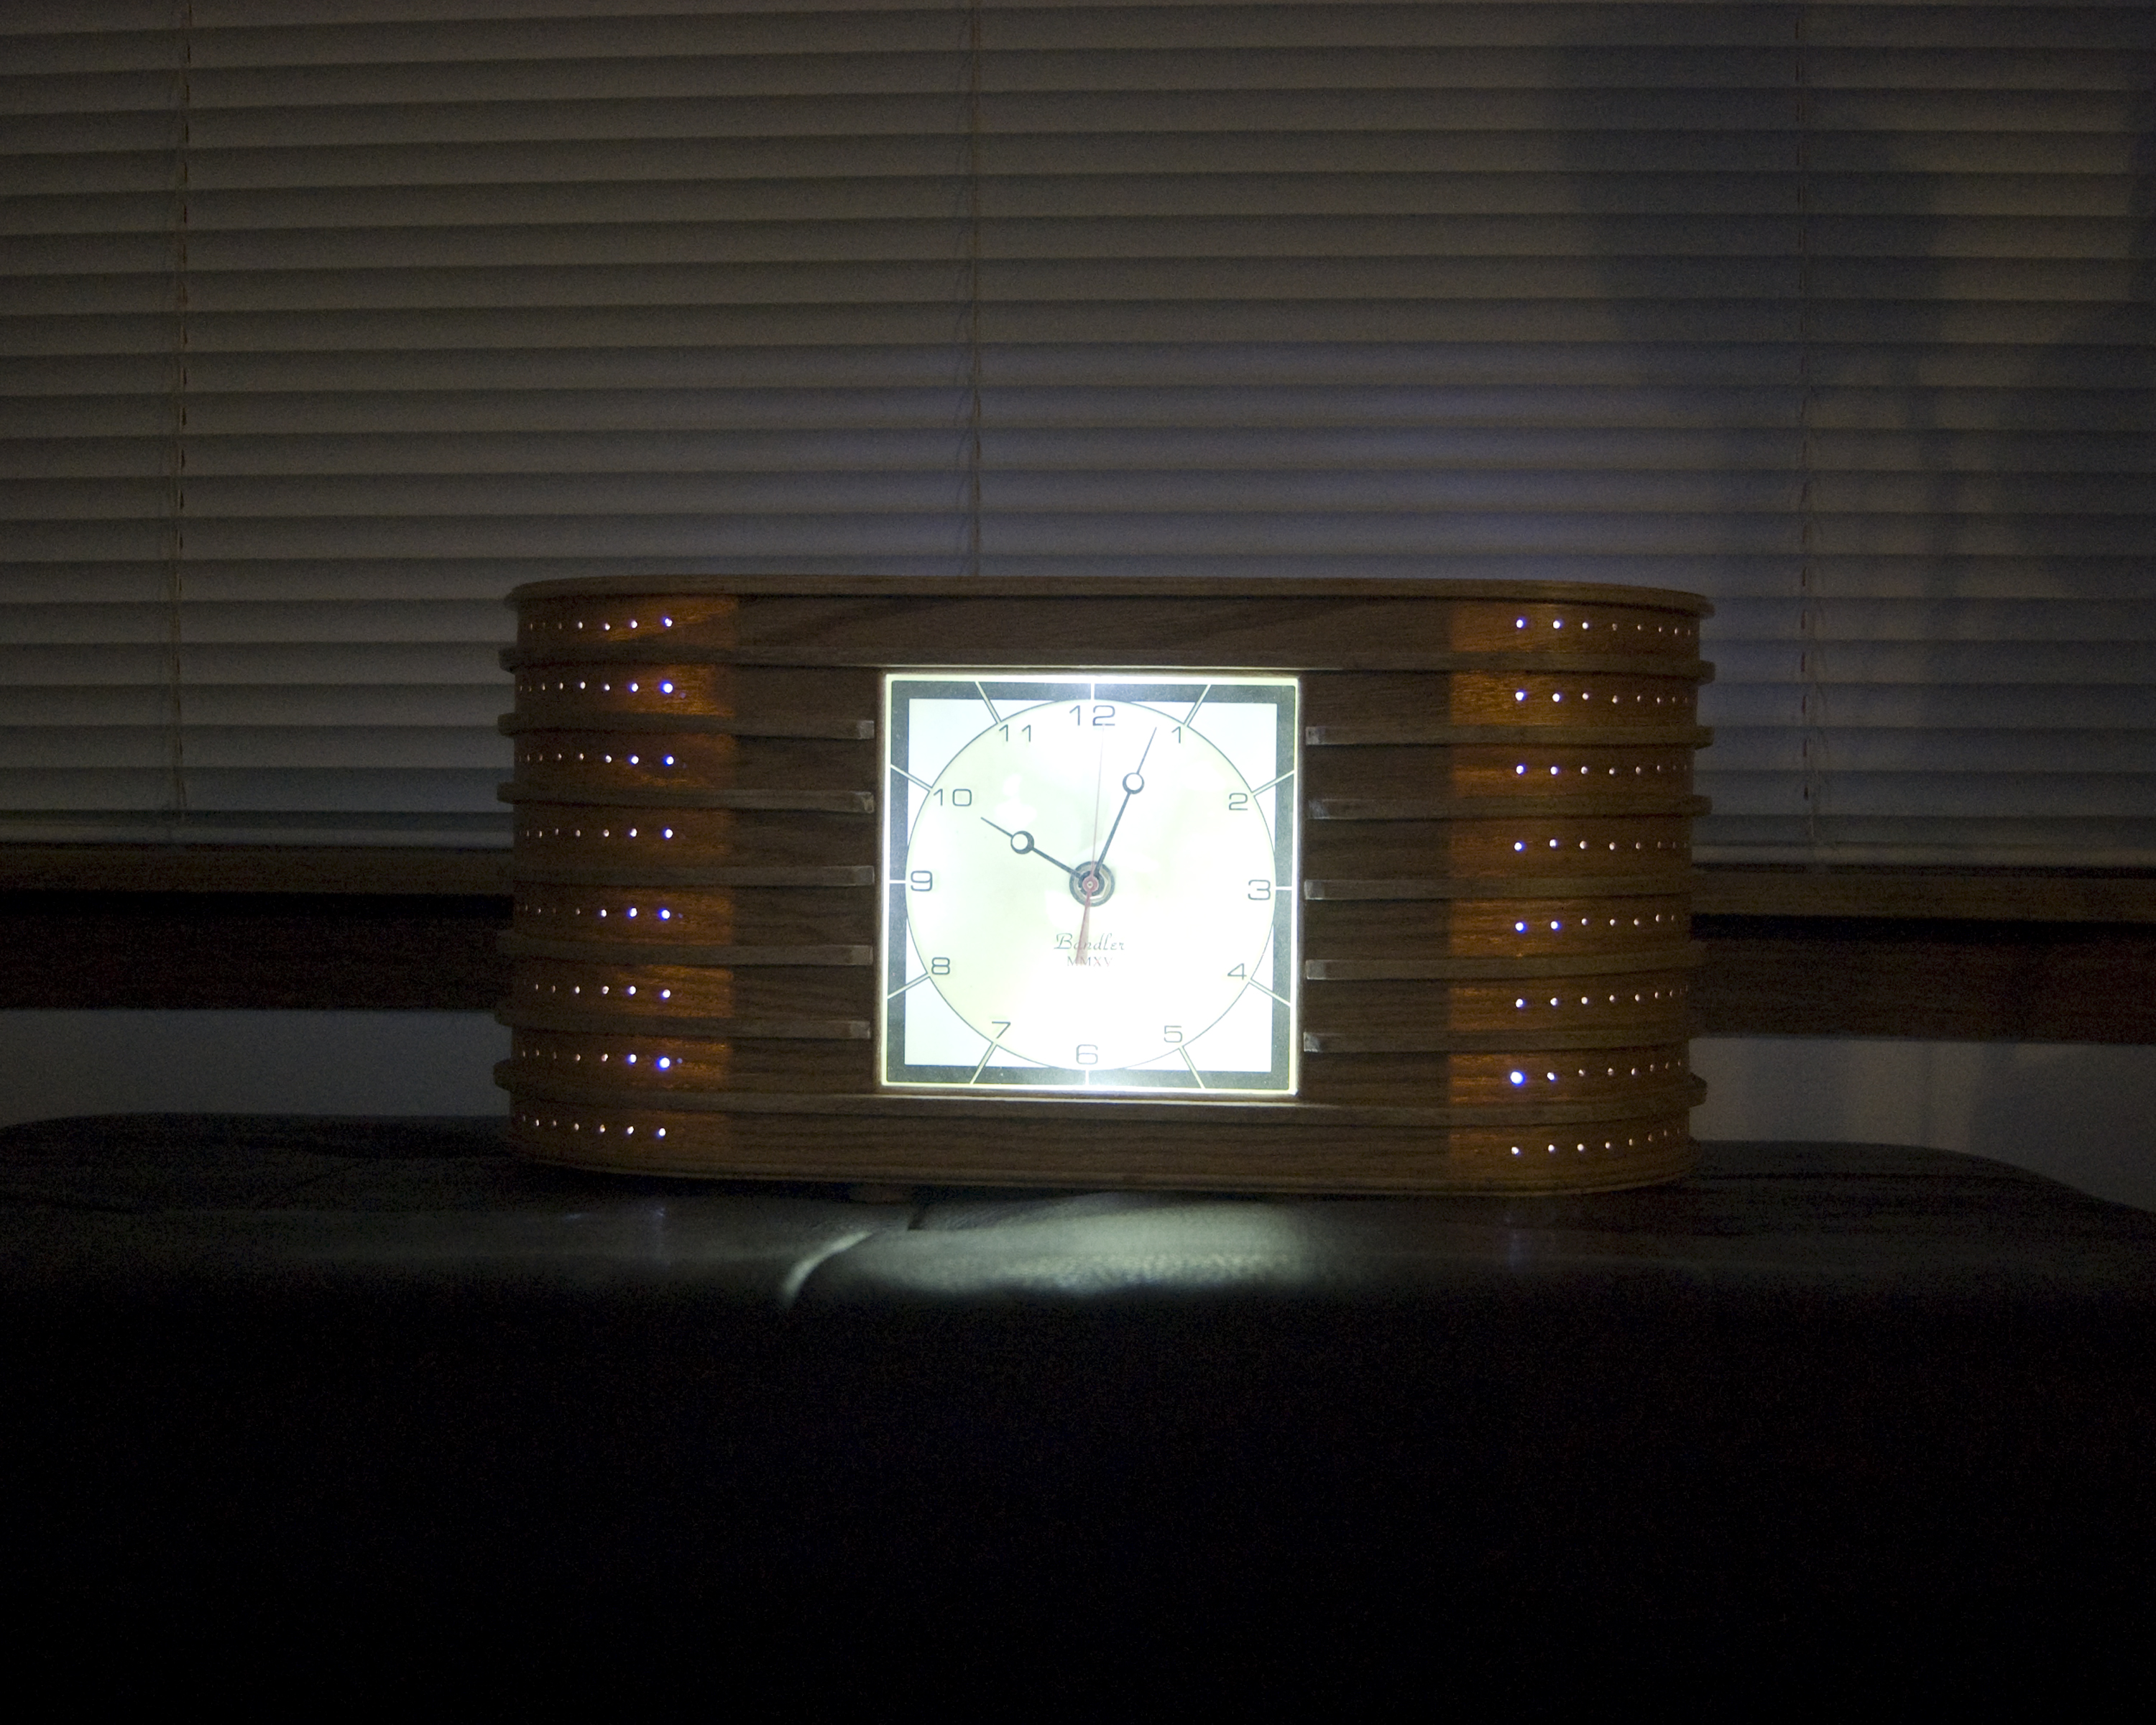 Deco Clock #2 Copyright © 2016 David M. Bandler, All Rights Reserved.